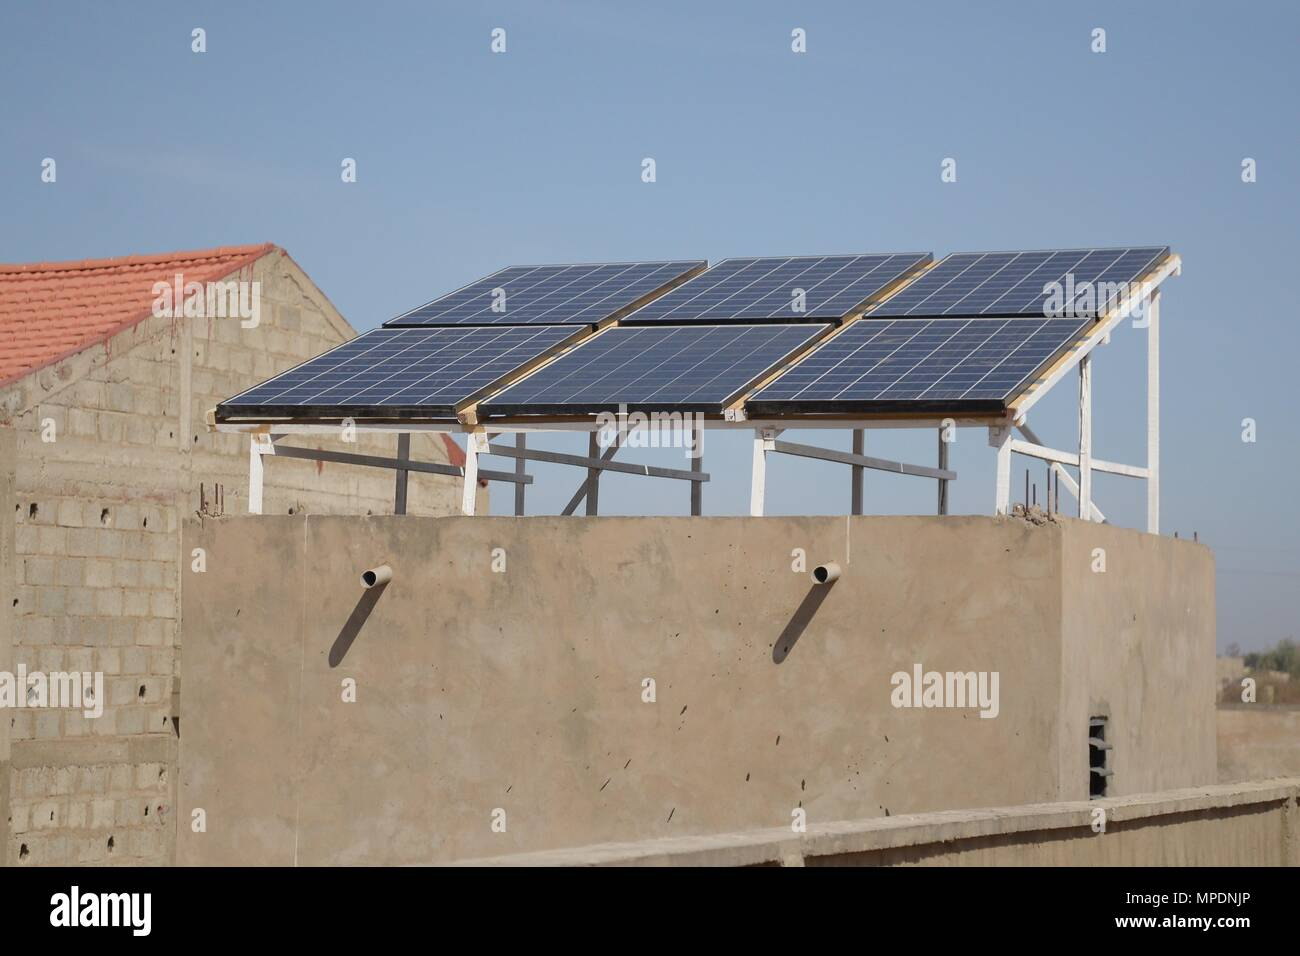 Completed solar panels on a building in the rural city of Mbour in the Republic of Senegal in West Africa. (Photo provided by Dr. Peter Cho/Released) - Stock Image